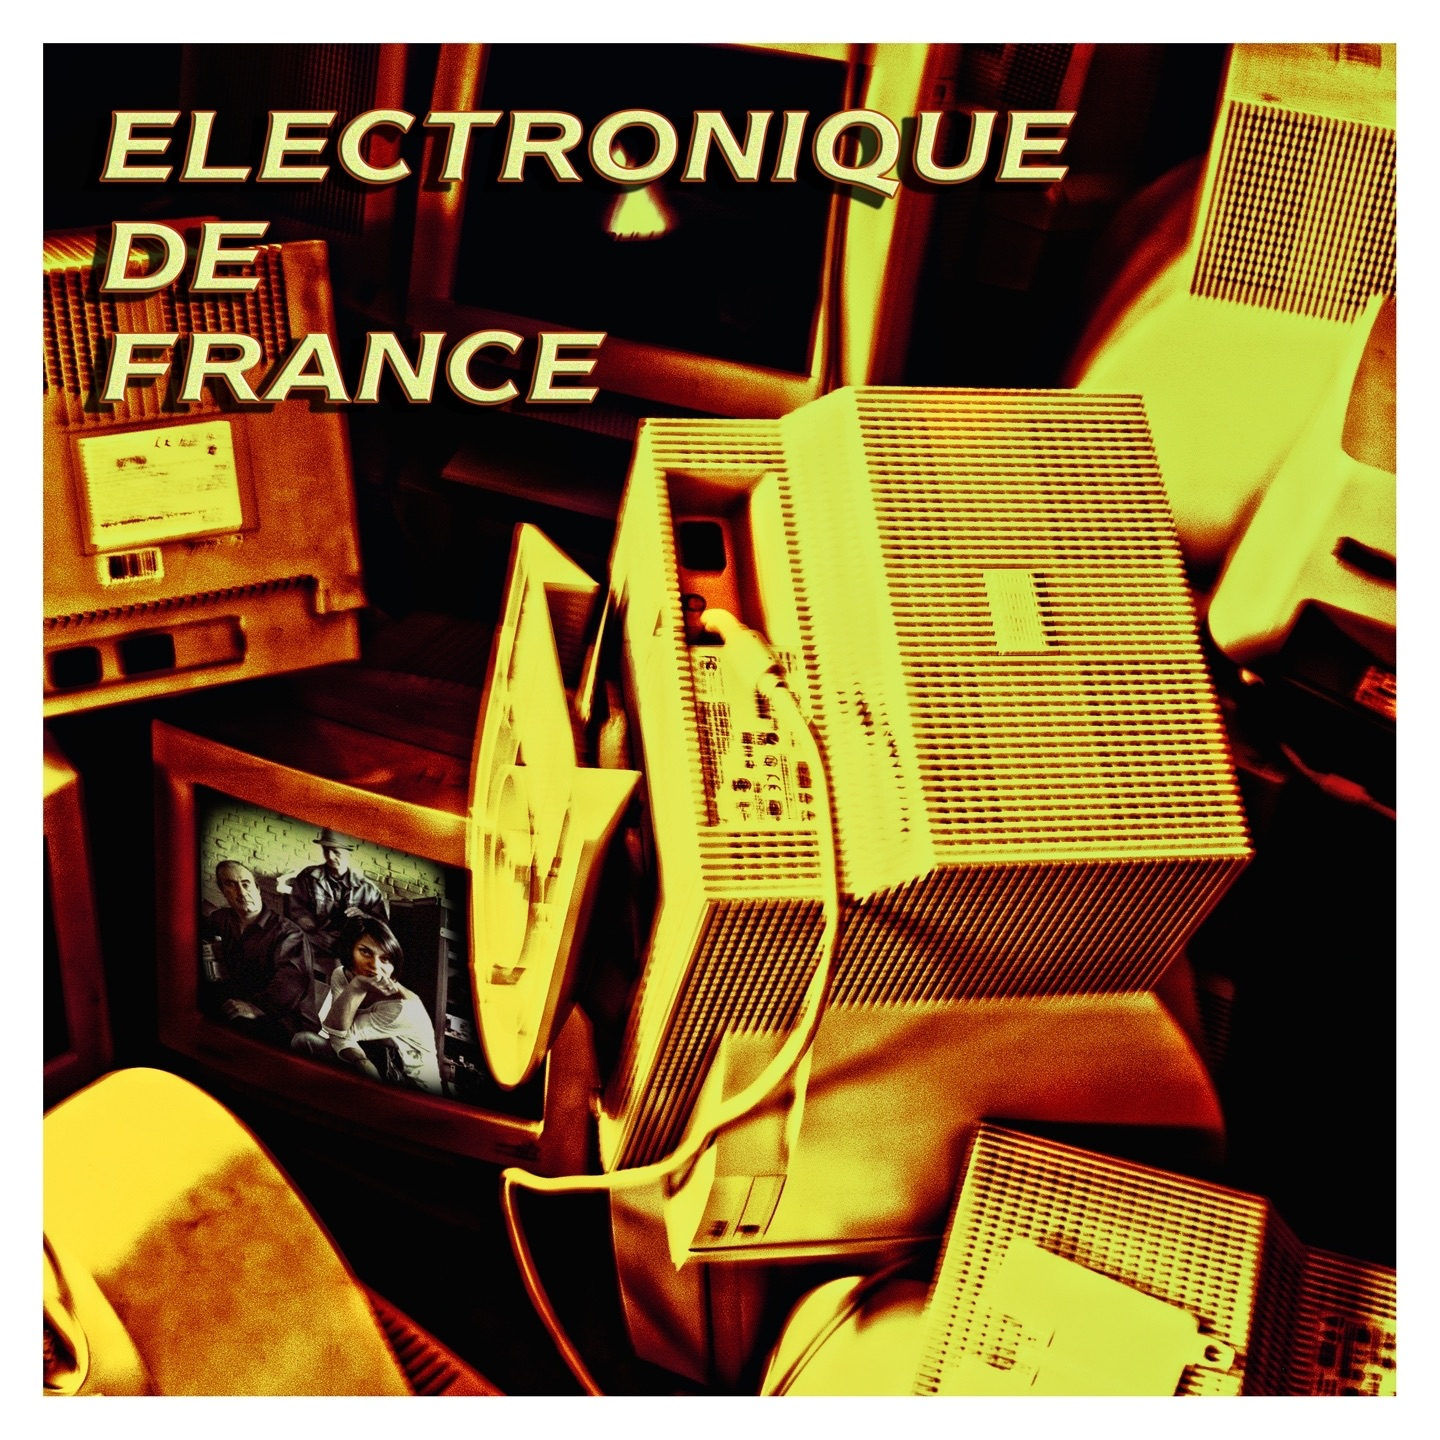 Electronique de France